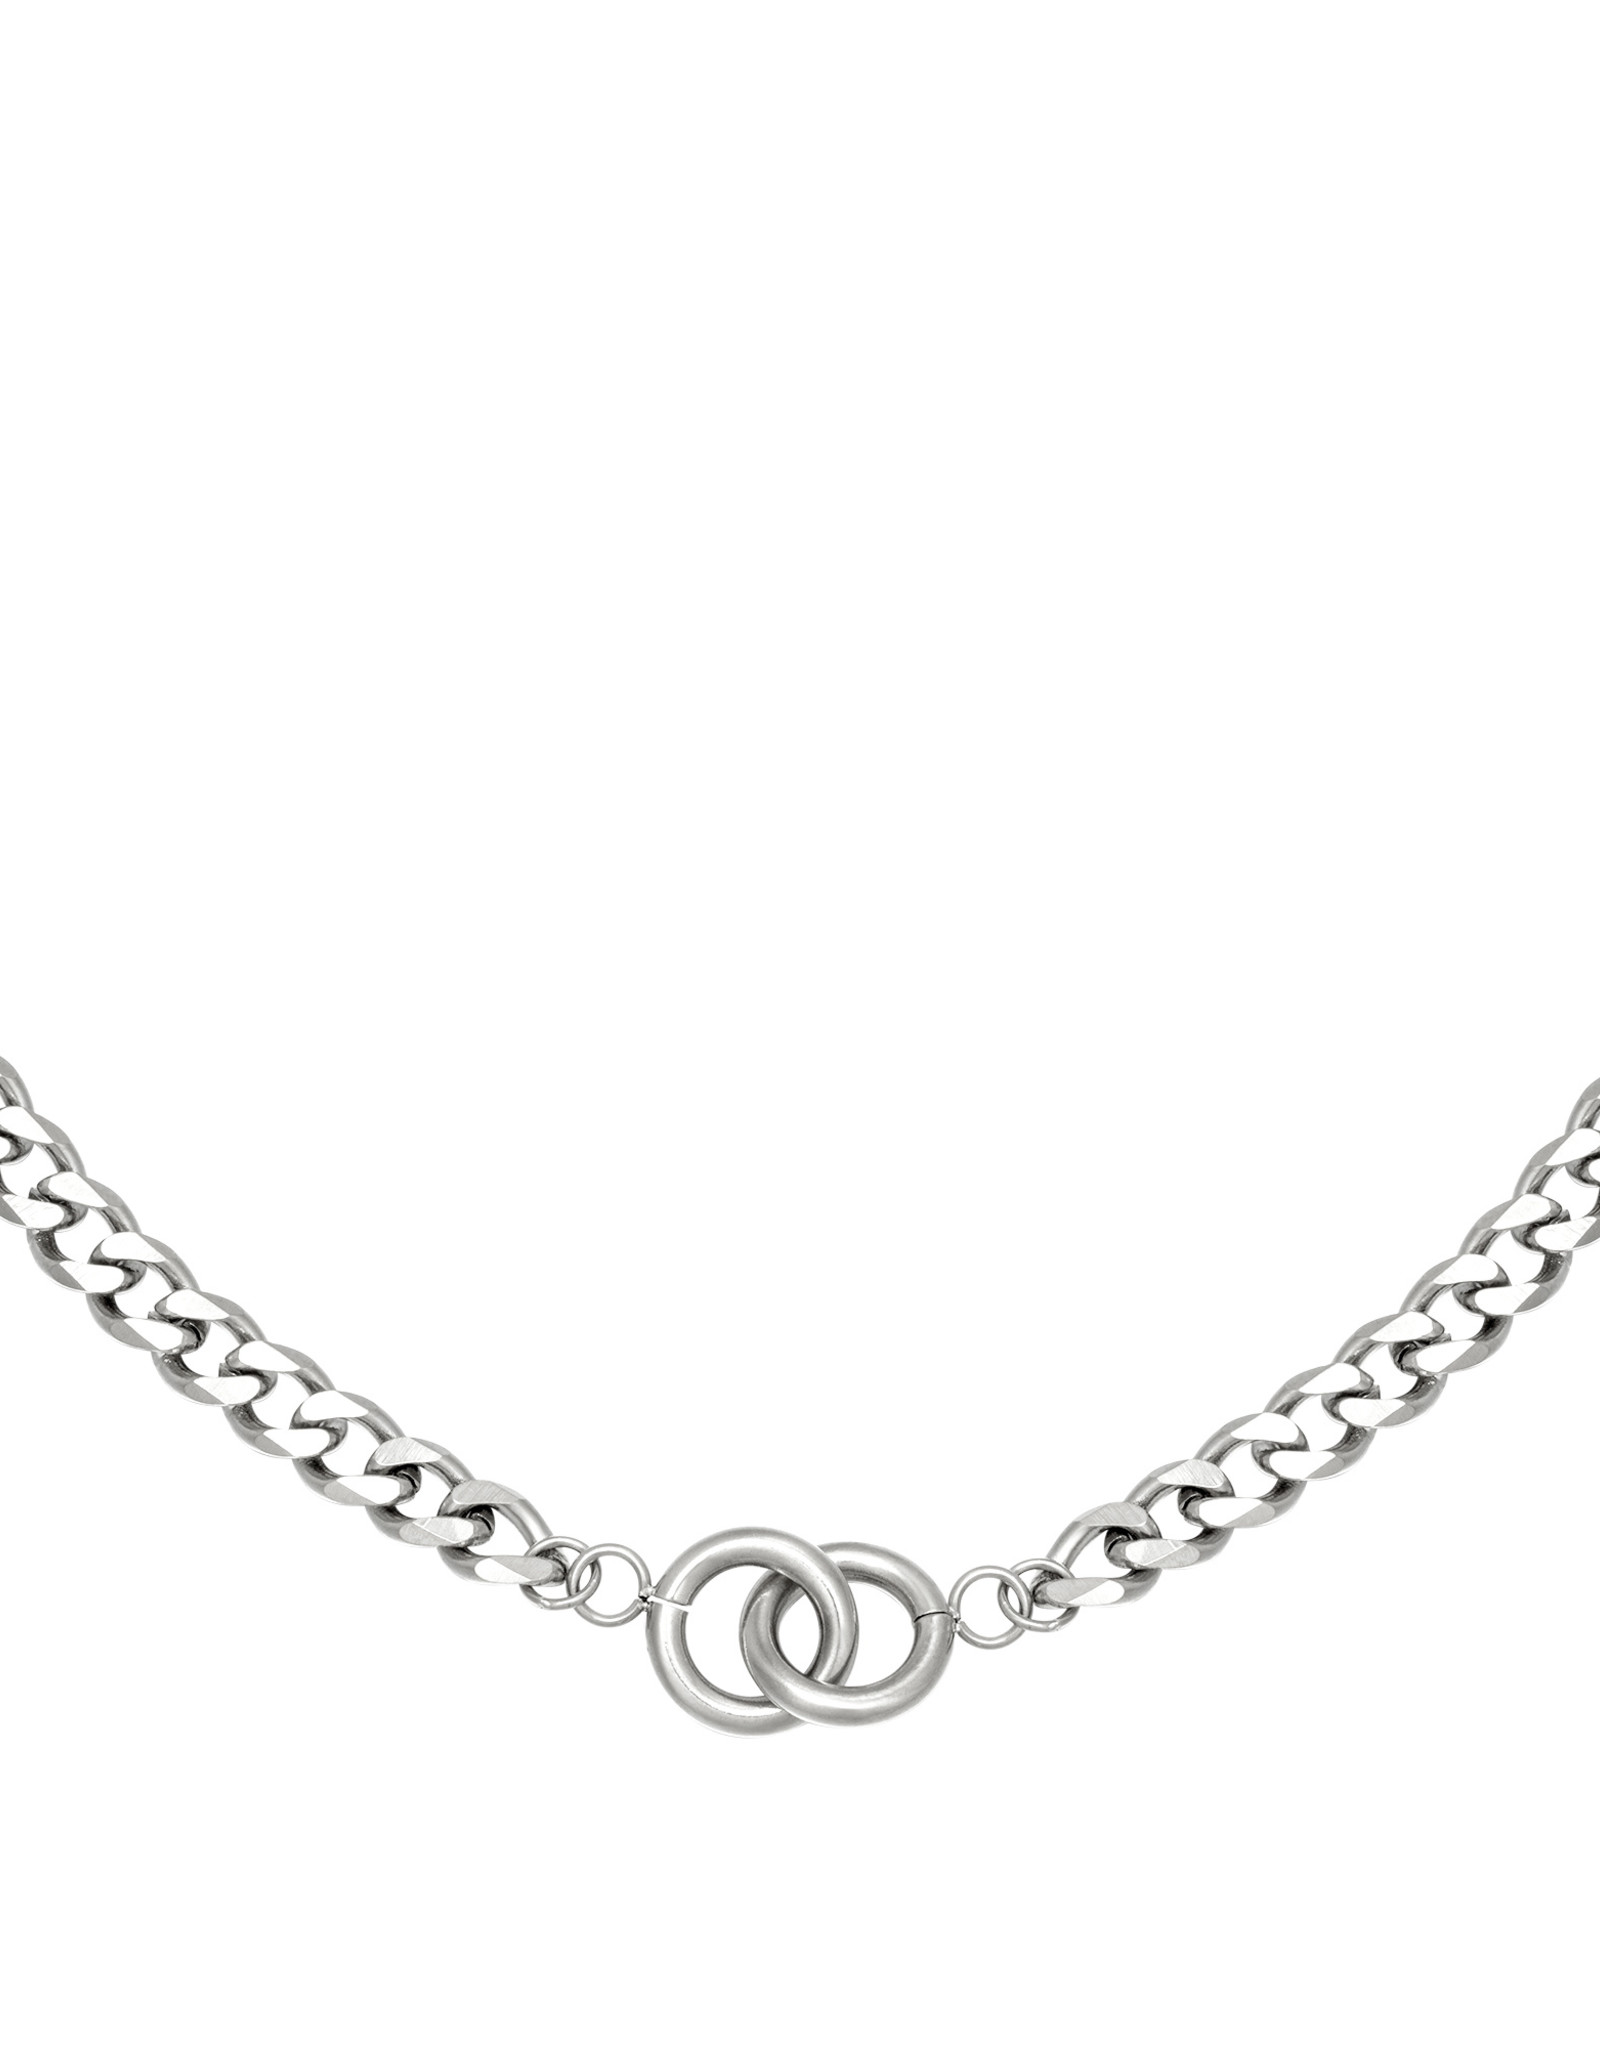 Necklace Intertwined Silver